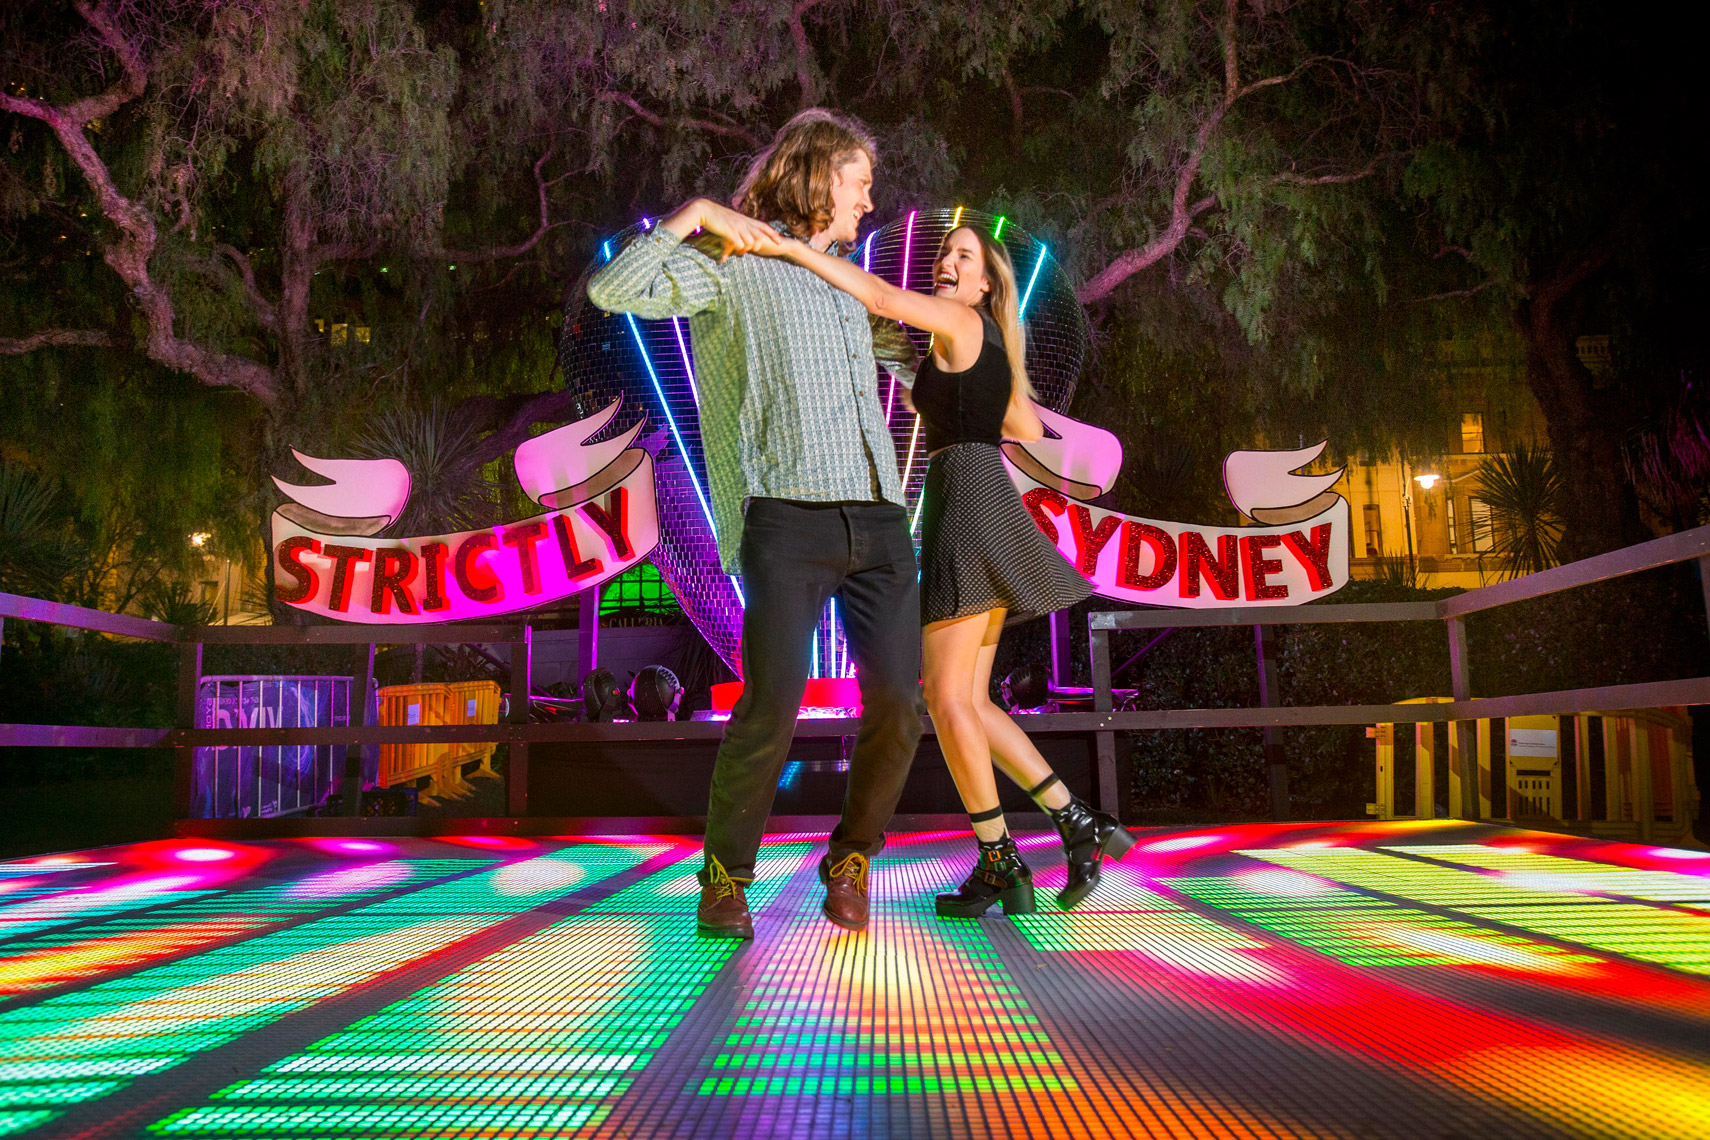 Vivid-Sydney-2014_Strictly-Sydney_First-Fleet-Park_James-Horan_DNSW_107